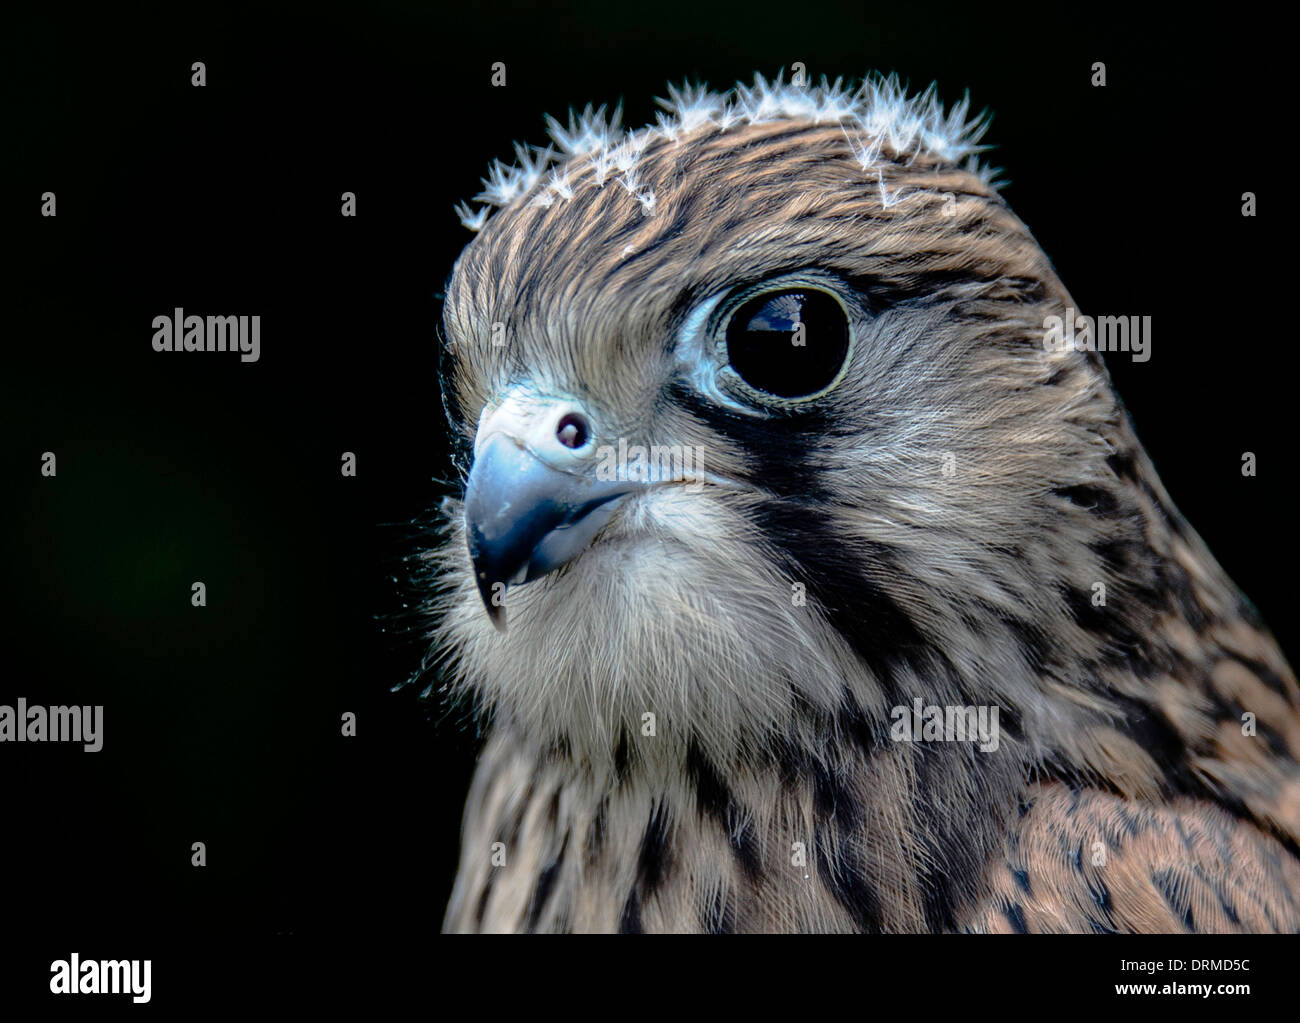 Young kestrel - Stock Image